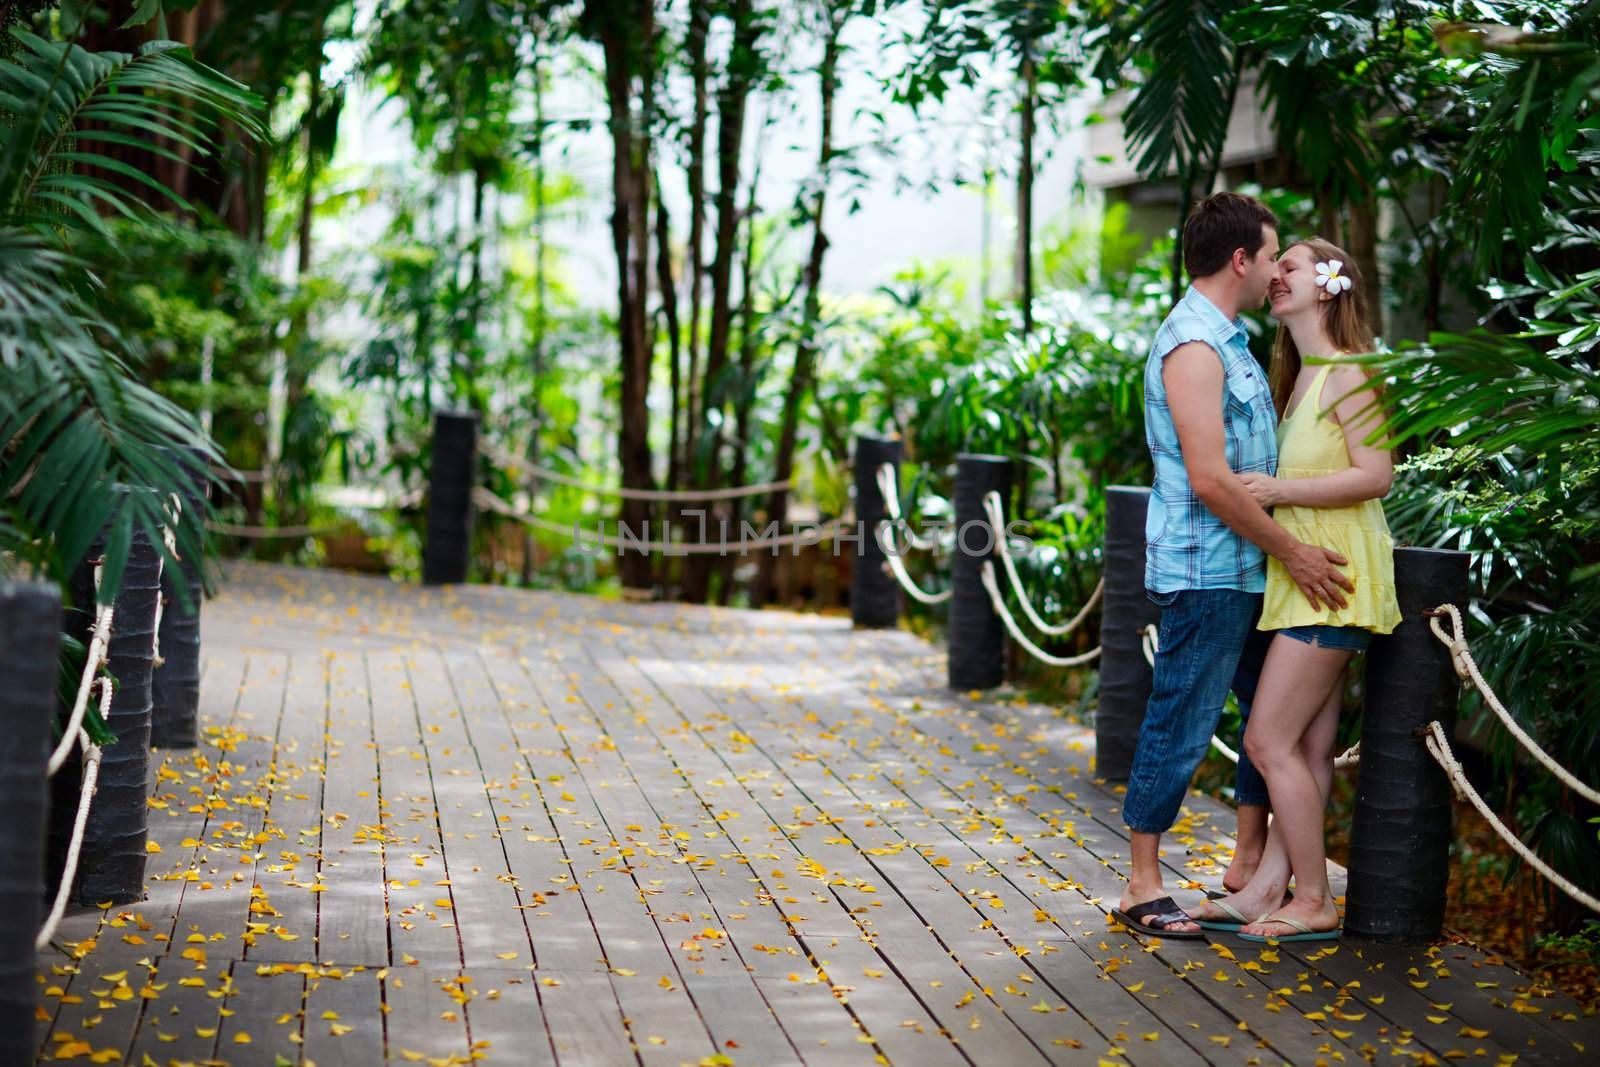 Young romantic couple kissing outdoors at summer day